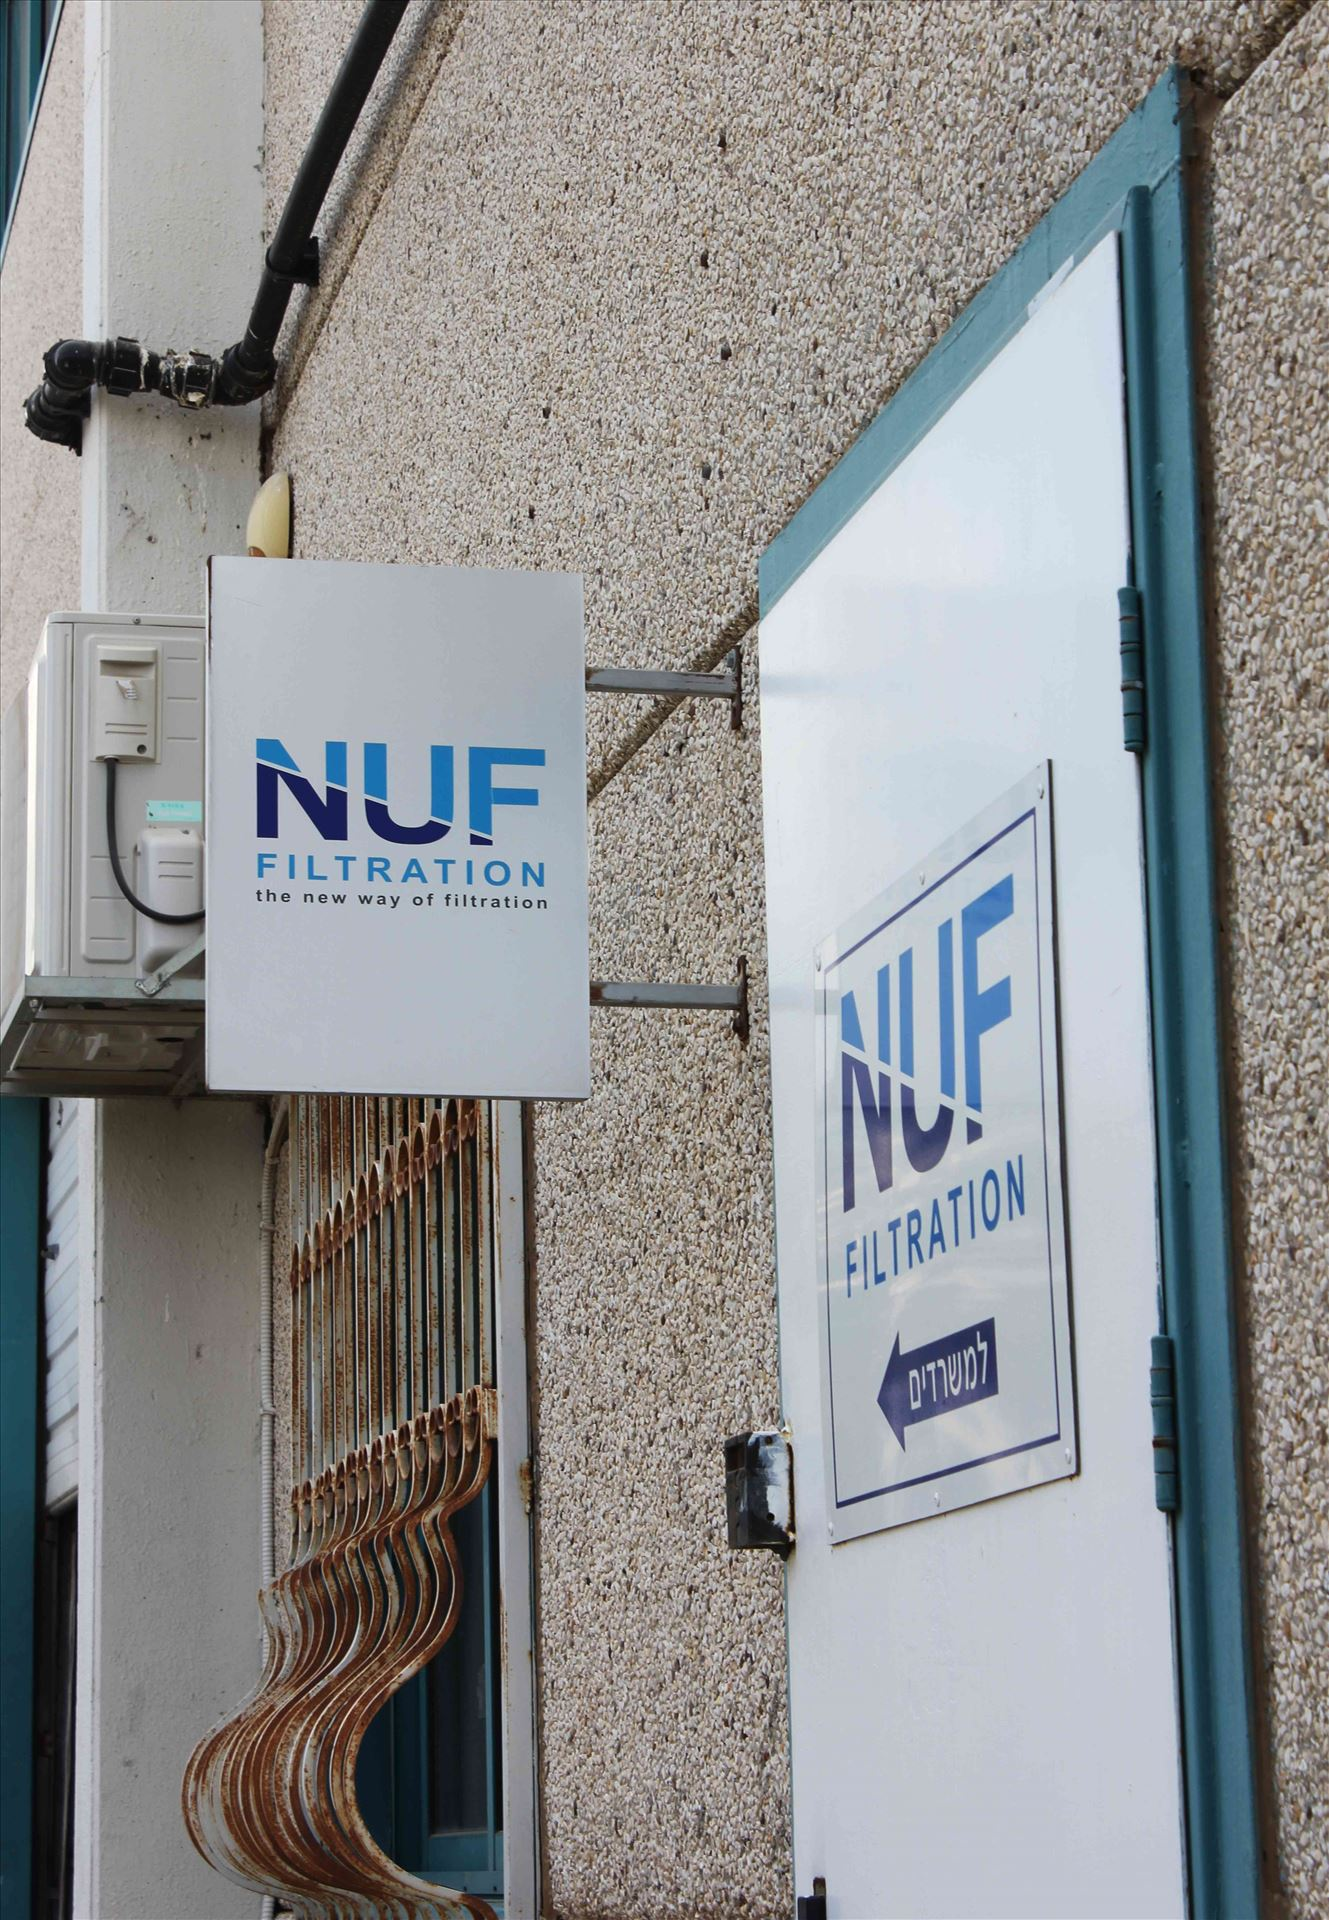 Nuf filtration